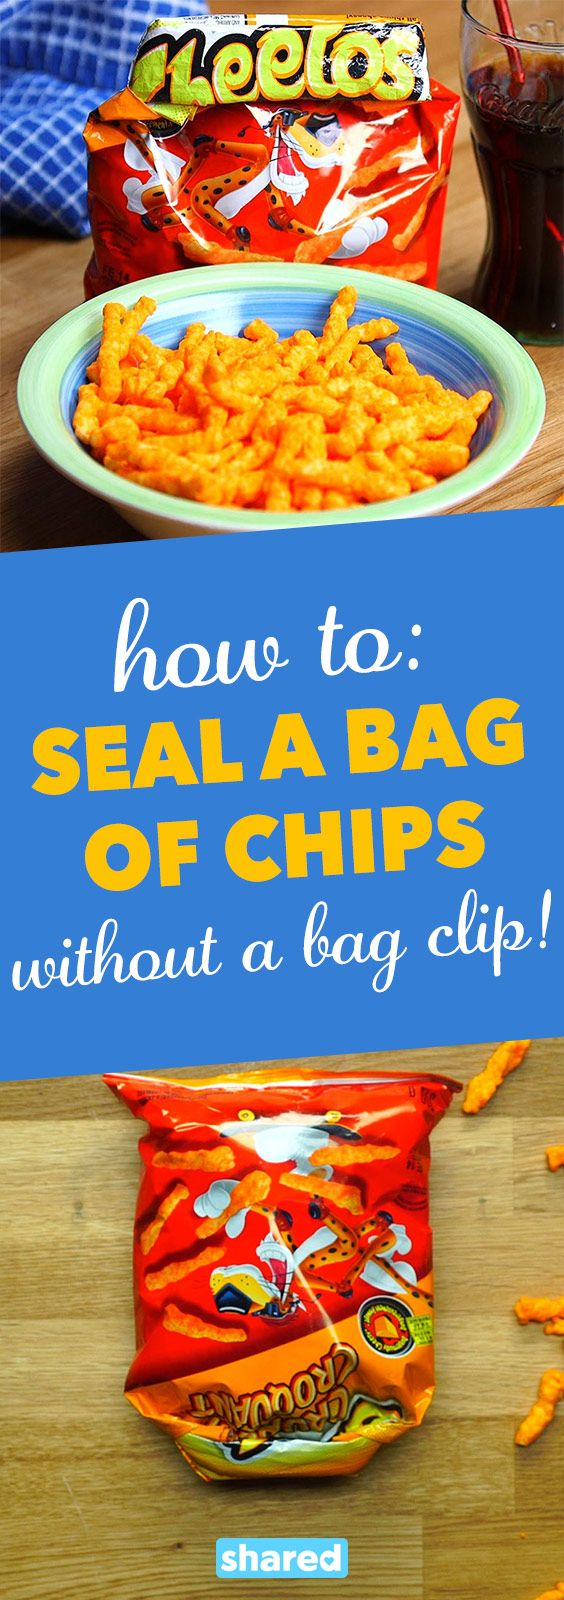 How To: Seal a Bag of Chips (Without a Bag Clip!) - Keeping your favorite snacks fresh is important but why search through countless drawers for clips and ties?   This simple kitchen hack will ensure your goodies are safely stored until your next snack time!